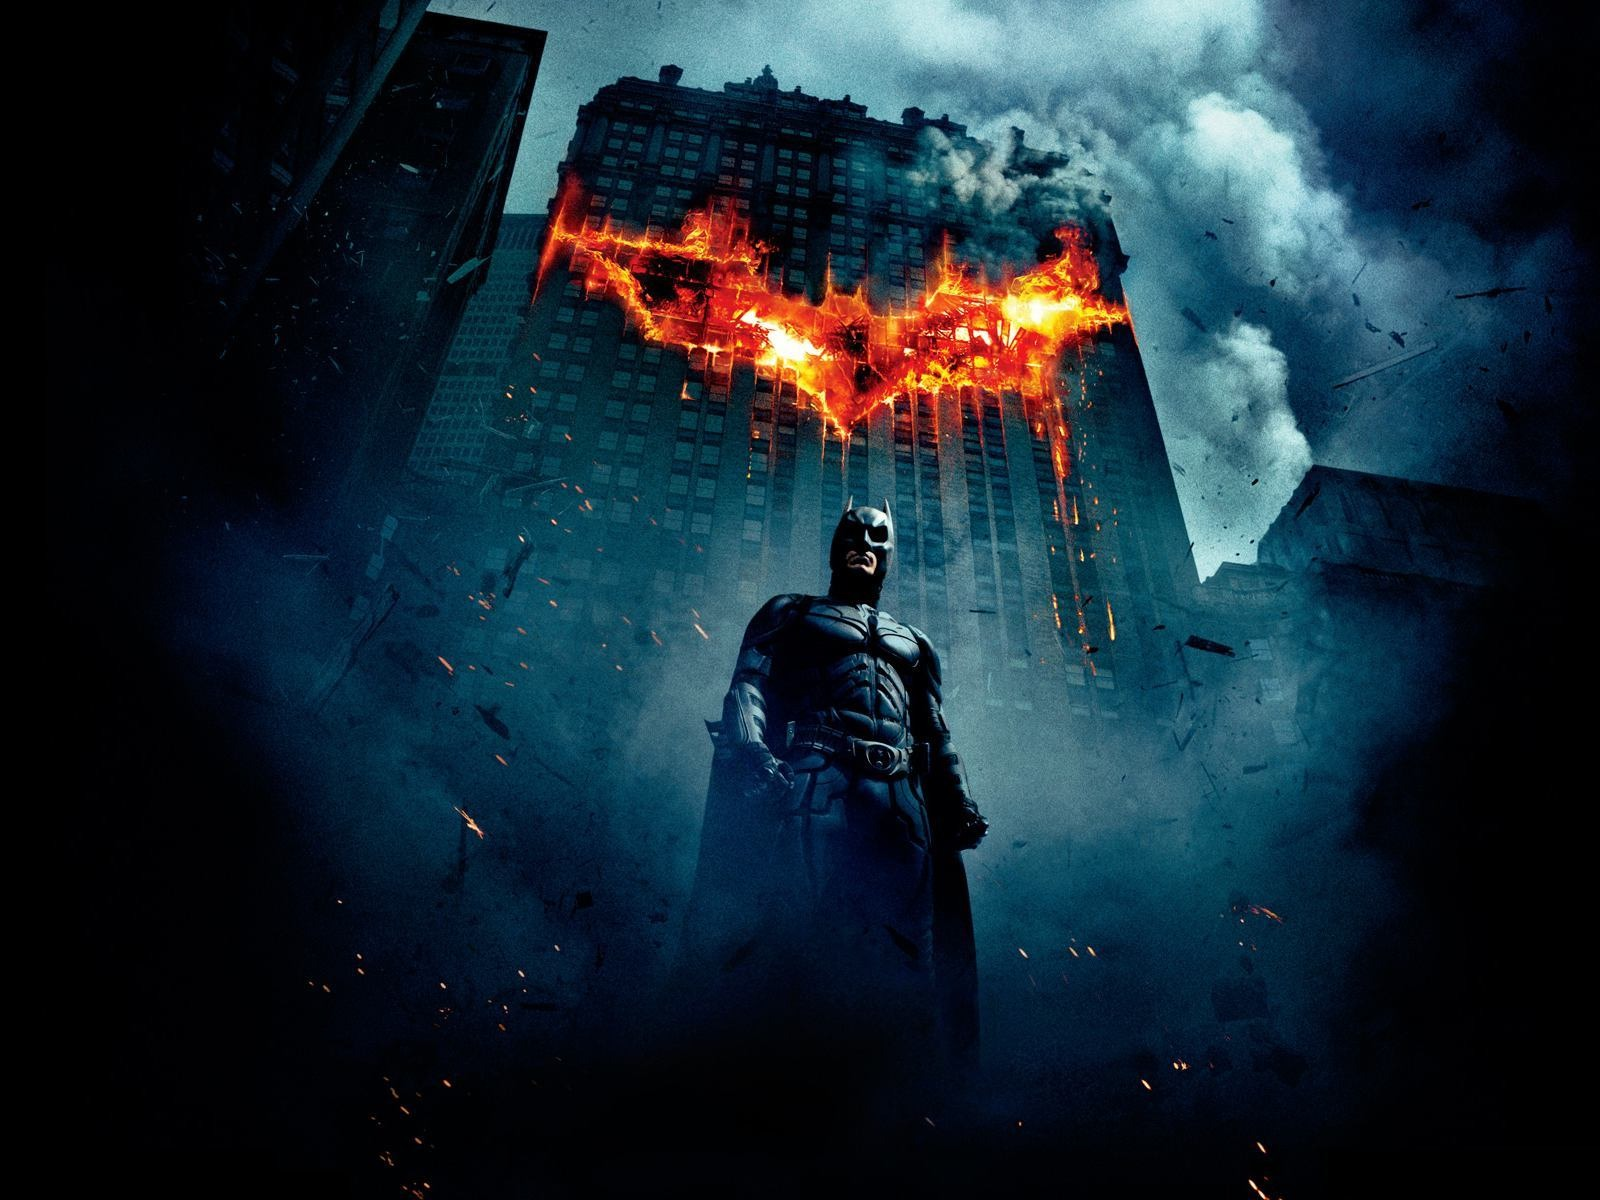 The Dark Knight desktop wallpaper 1600x1200